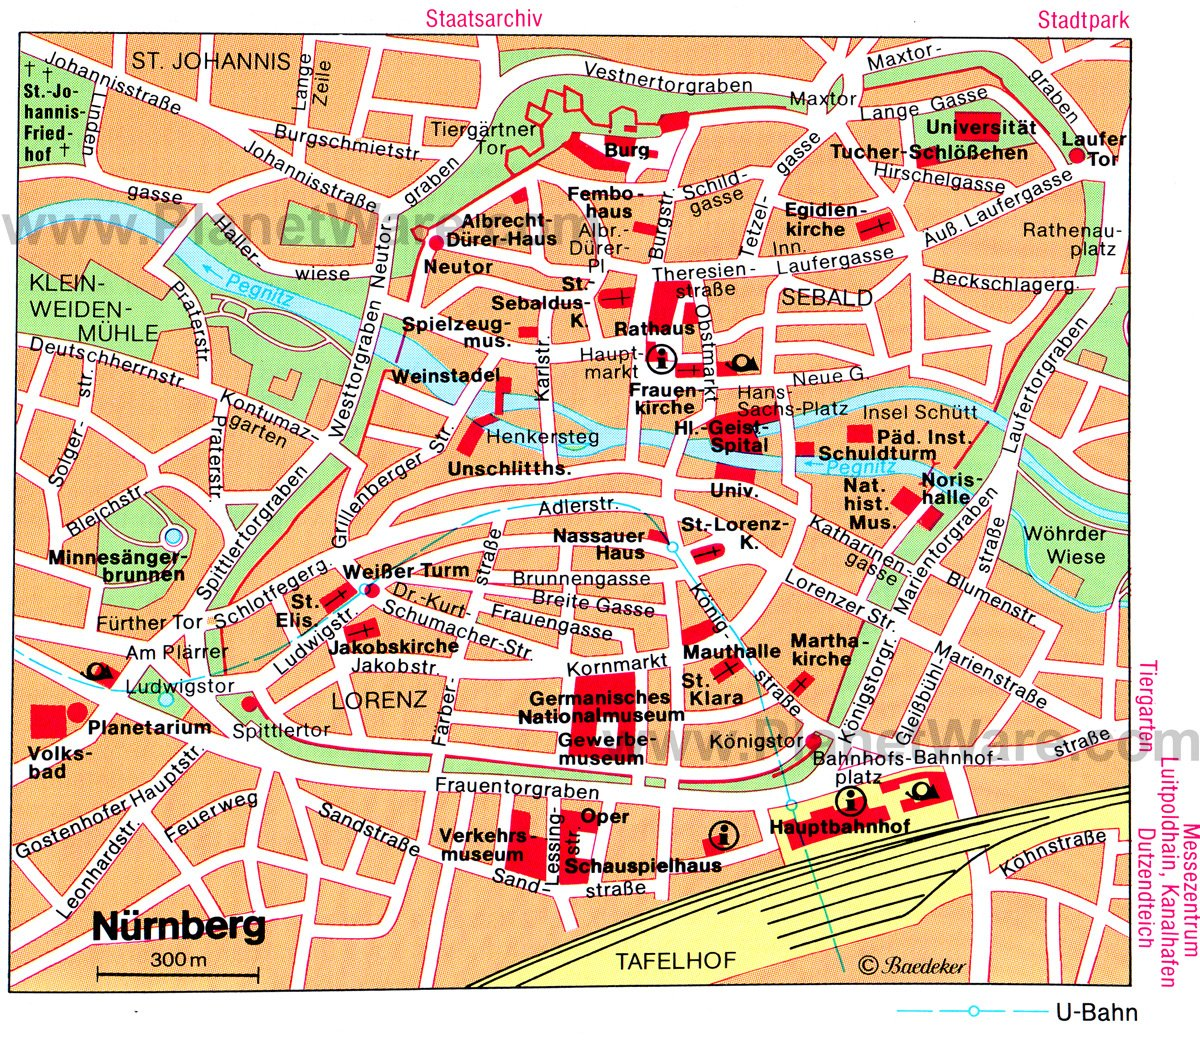 12 Top Tourist Attractions in Nuremberg and Easy Day Trips – Germany Tourist Attractions Map